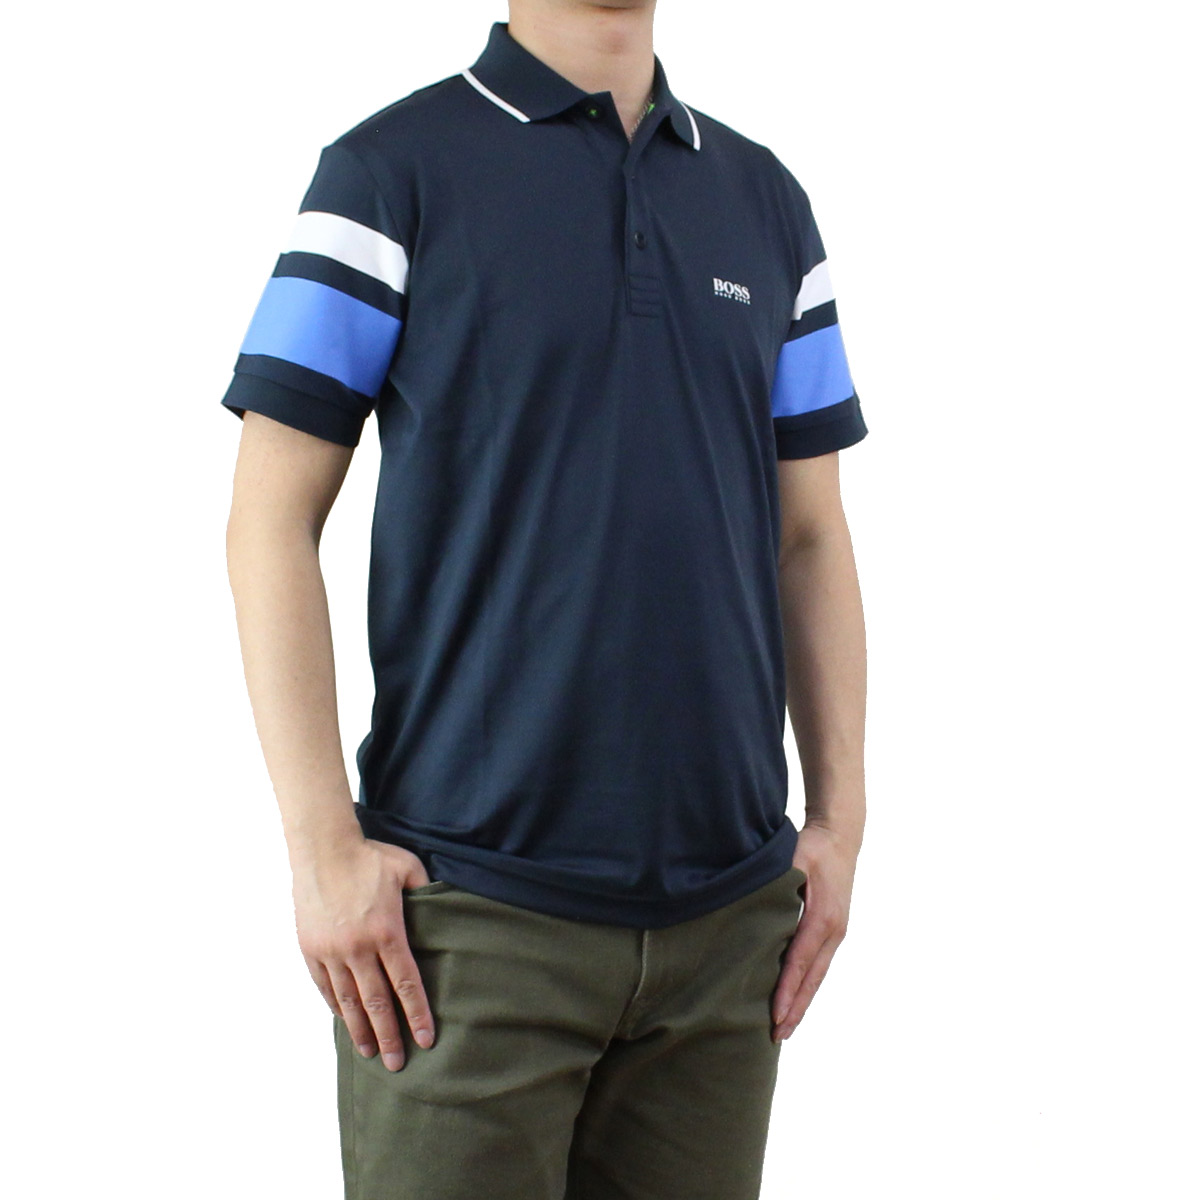 f8e299aee Bighit The total brand wholesale: Hugo boss (HUGO BOSS) PADDY 5 men's polo  shirt 50329638 10175216 410 navy system | Rakuten Global Market